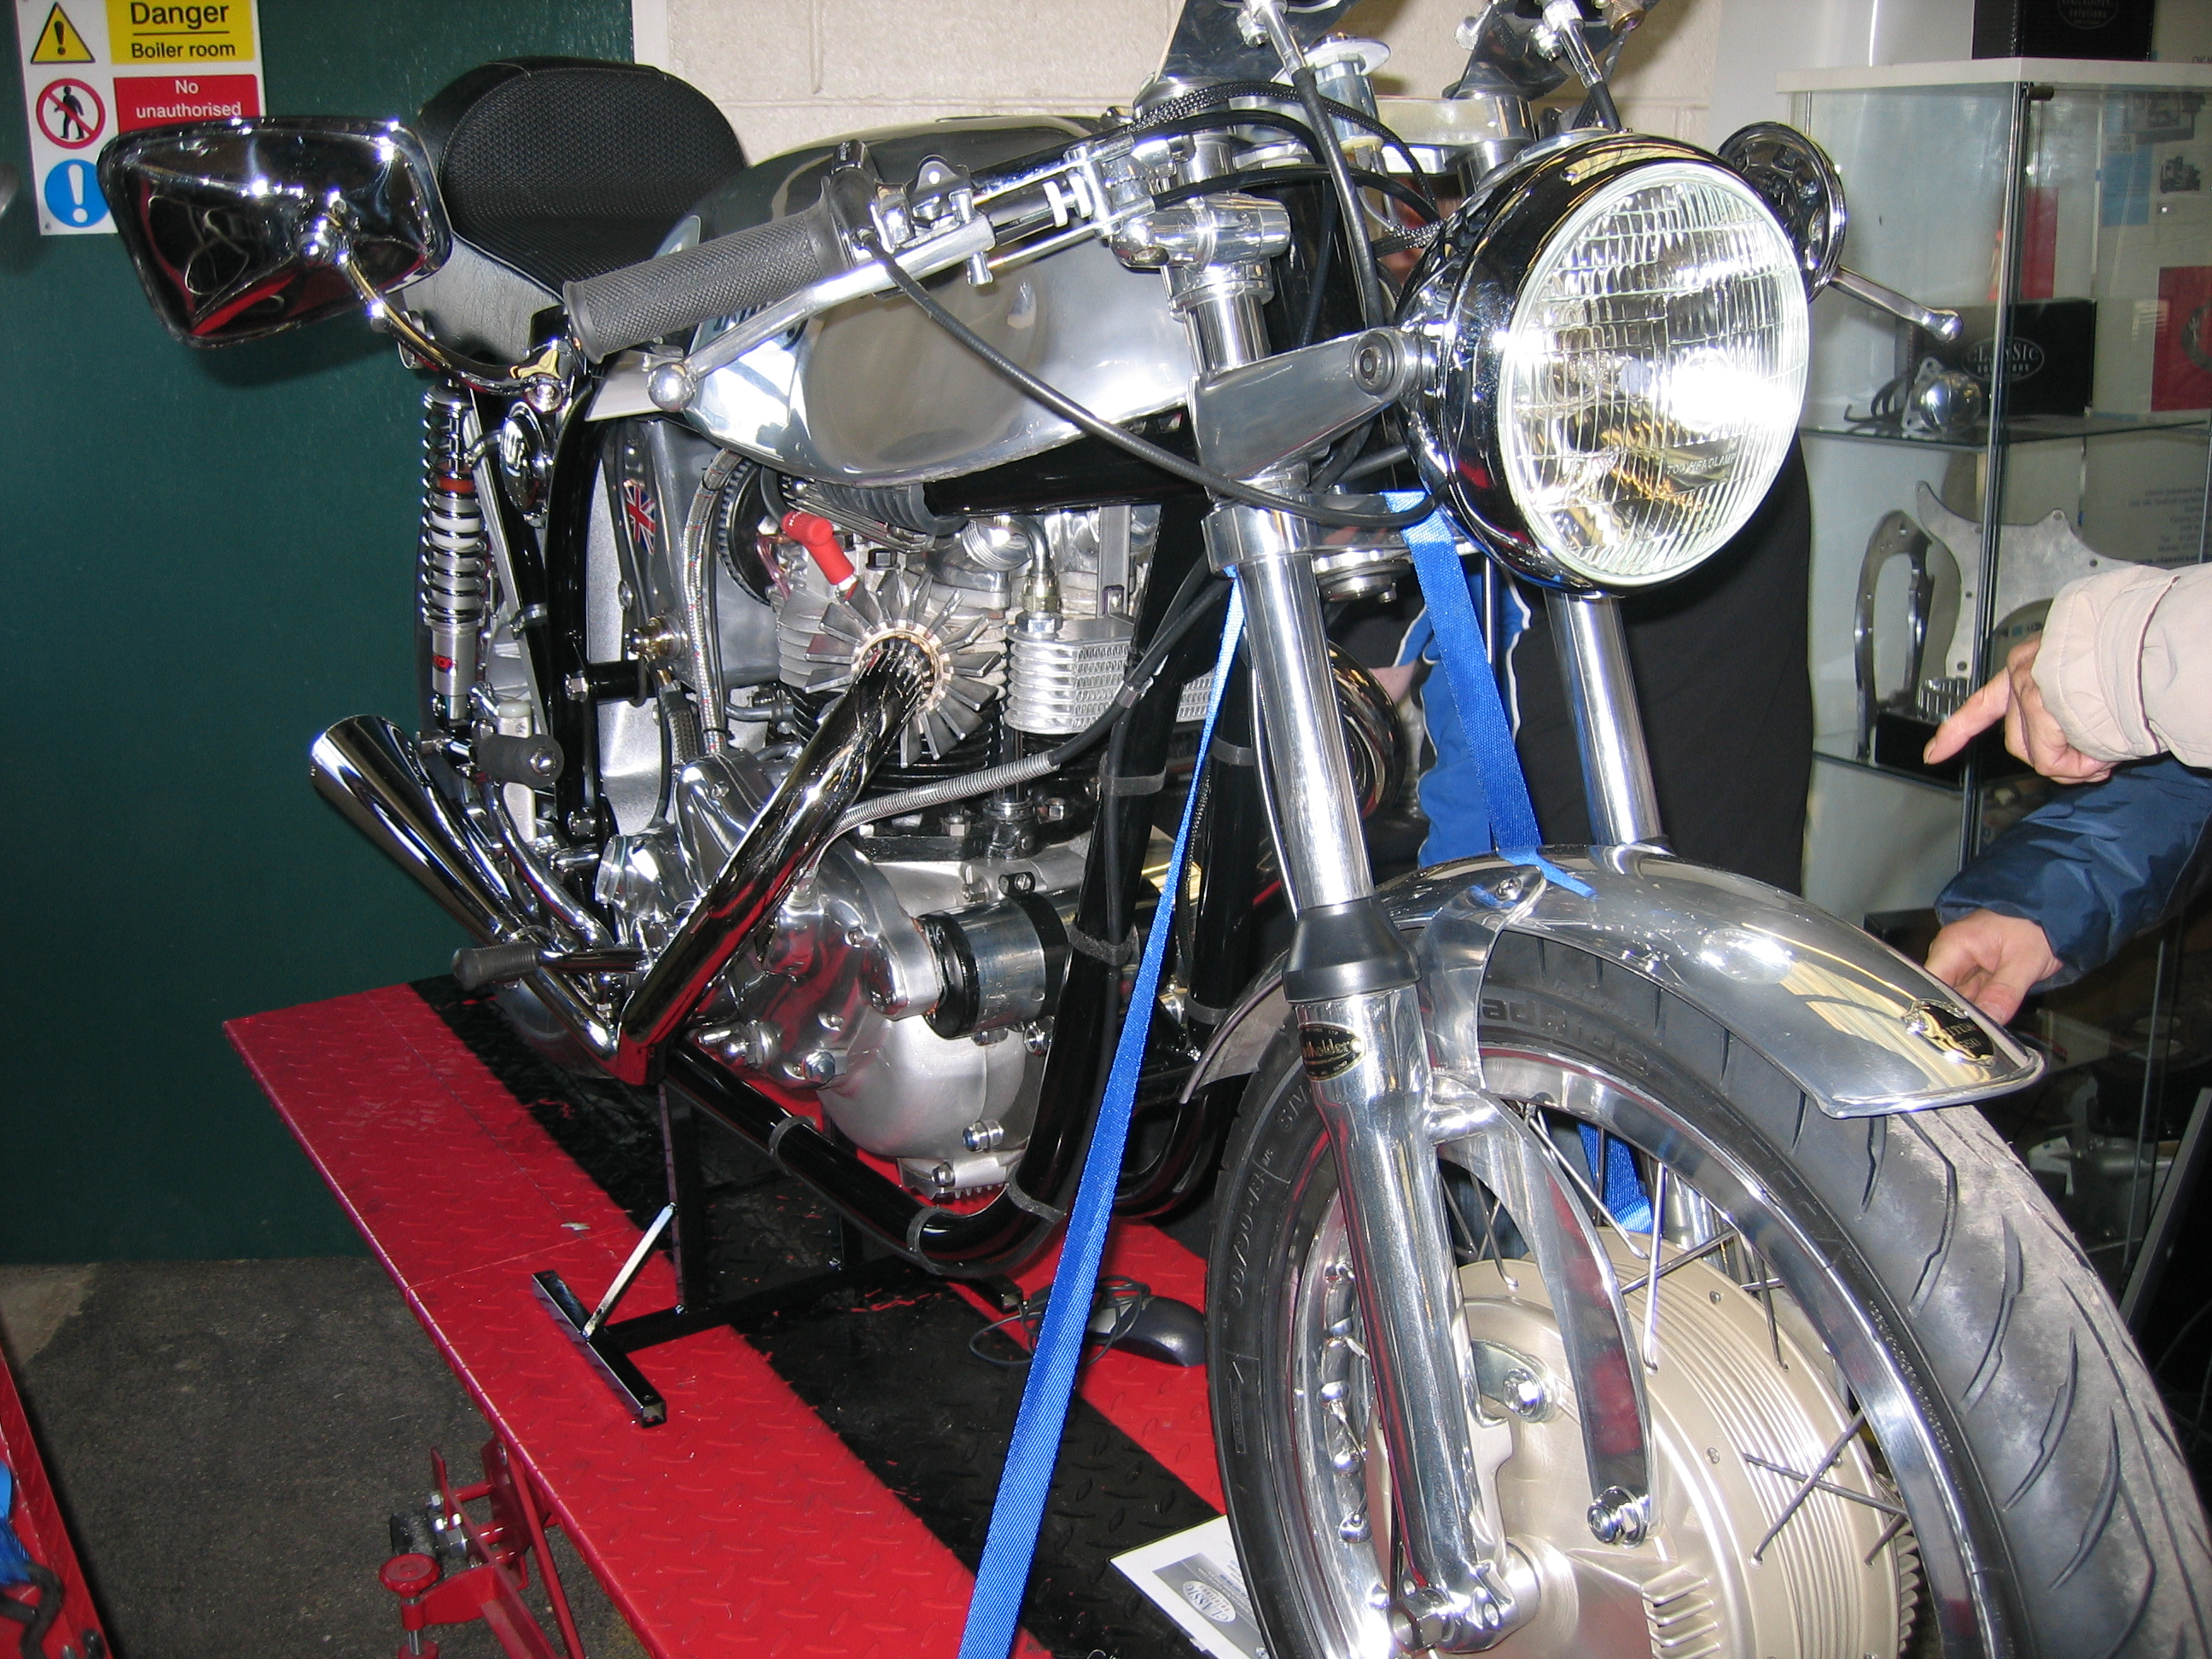 File Flickr Ronsaunders47 The Triton Classic Cafe Racer Jpg Wikimedia Commons